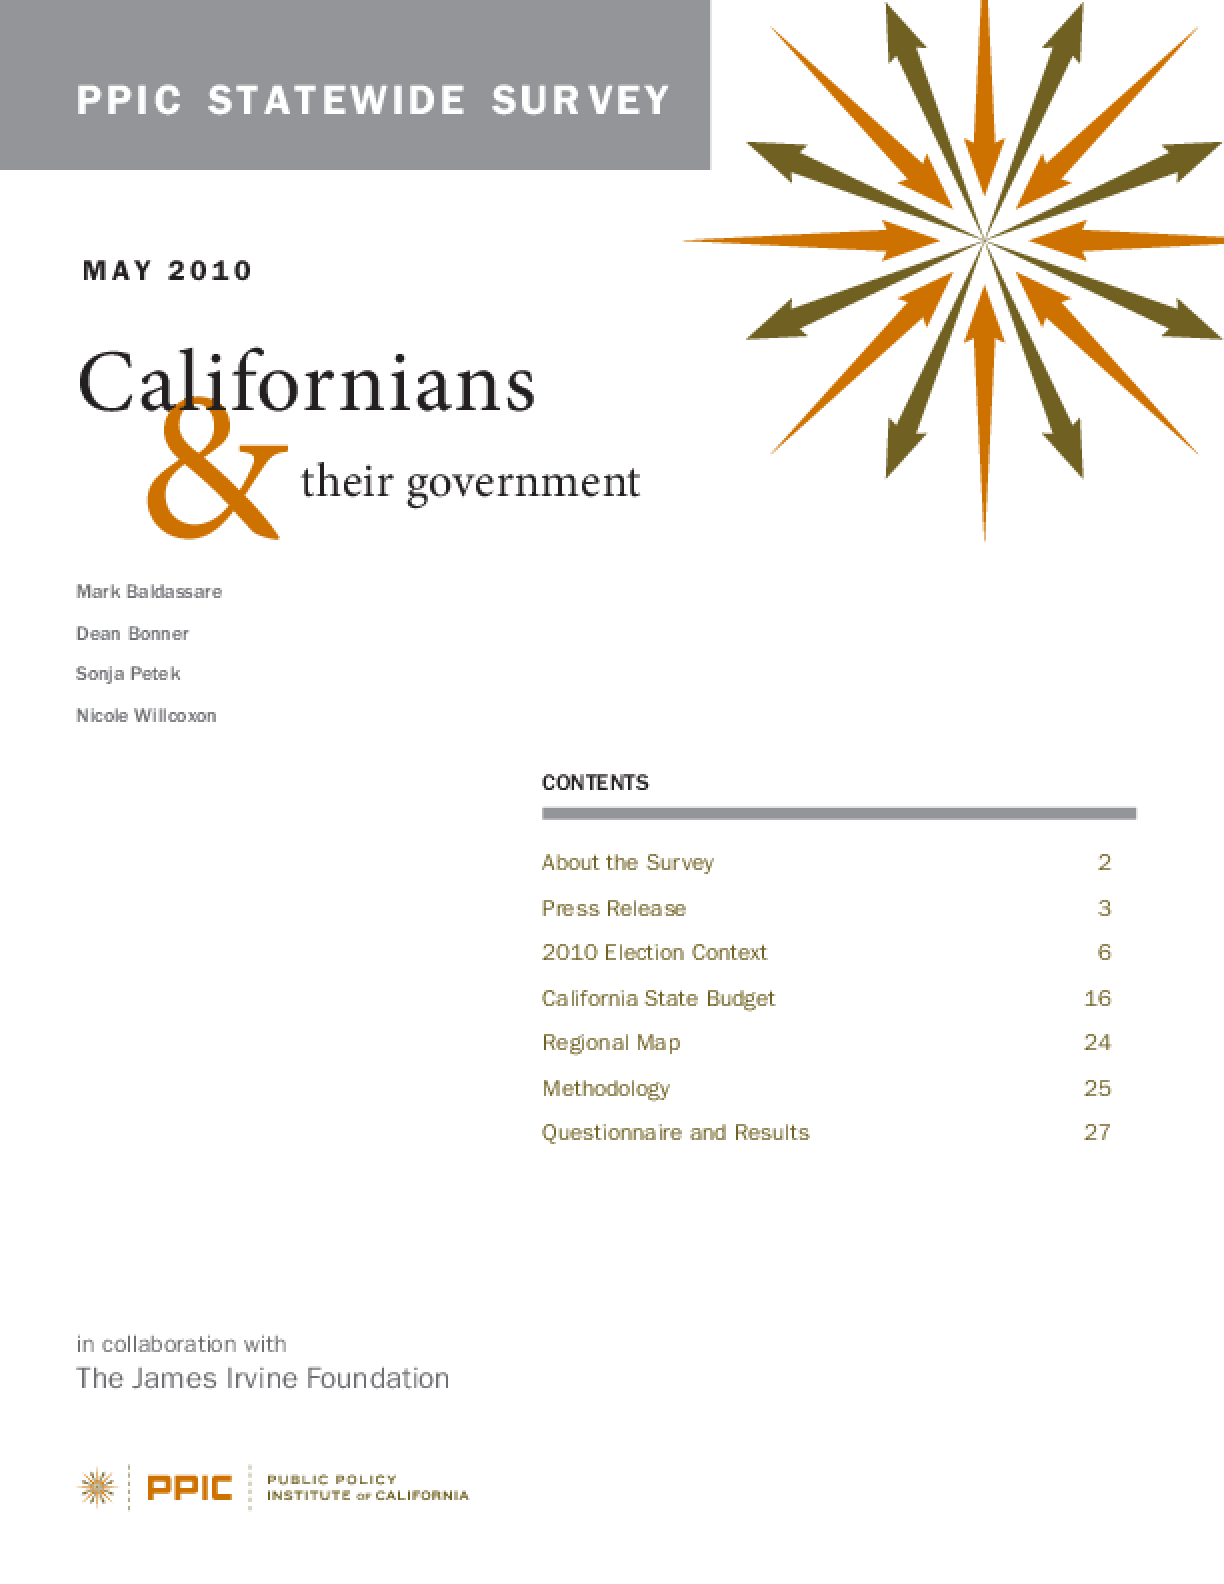 PPIC Statewide Survey: Californians and Their Government May 2010